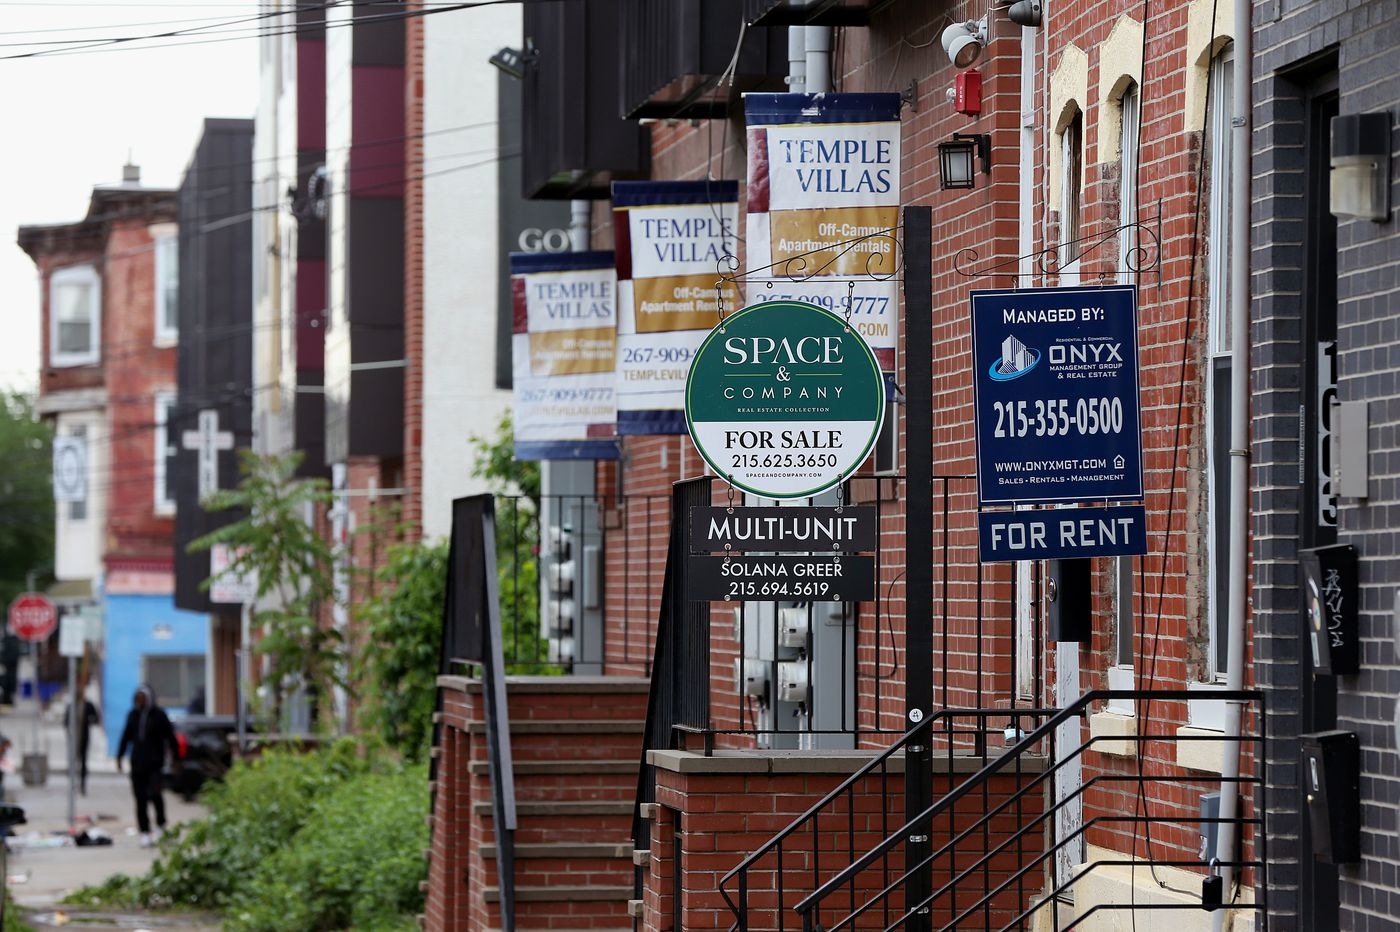 Is Philadelphia getting too crowded? City Council president wants fewer apartments and more parking.   Inga Saffron